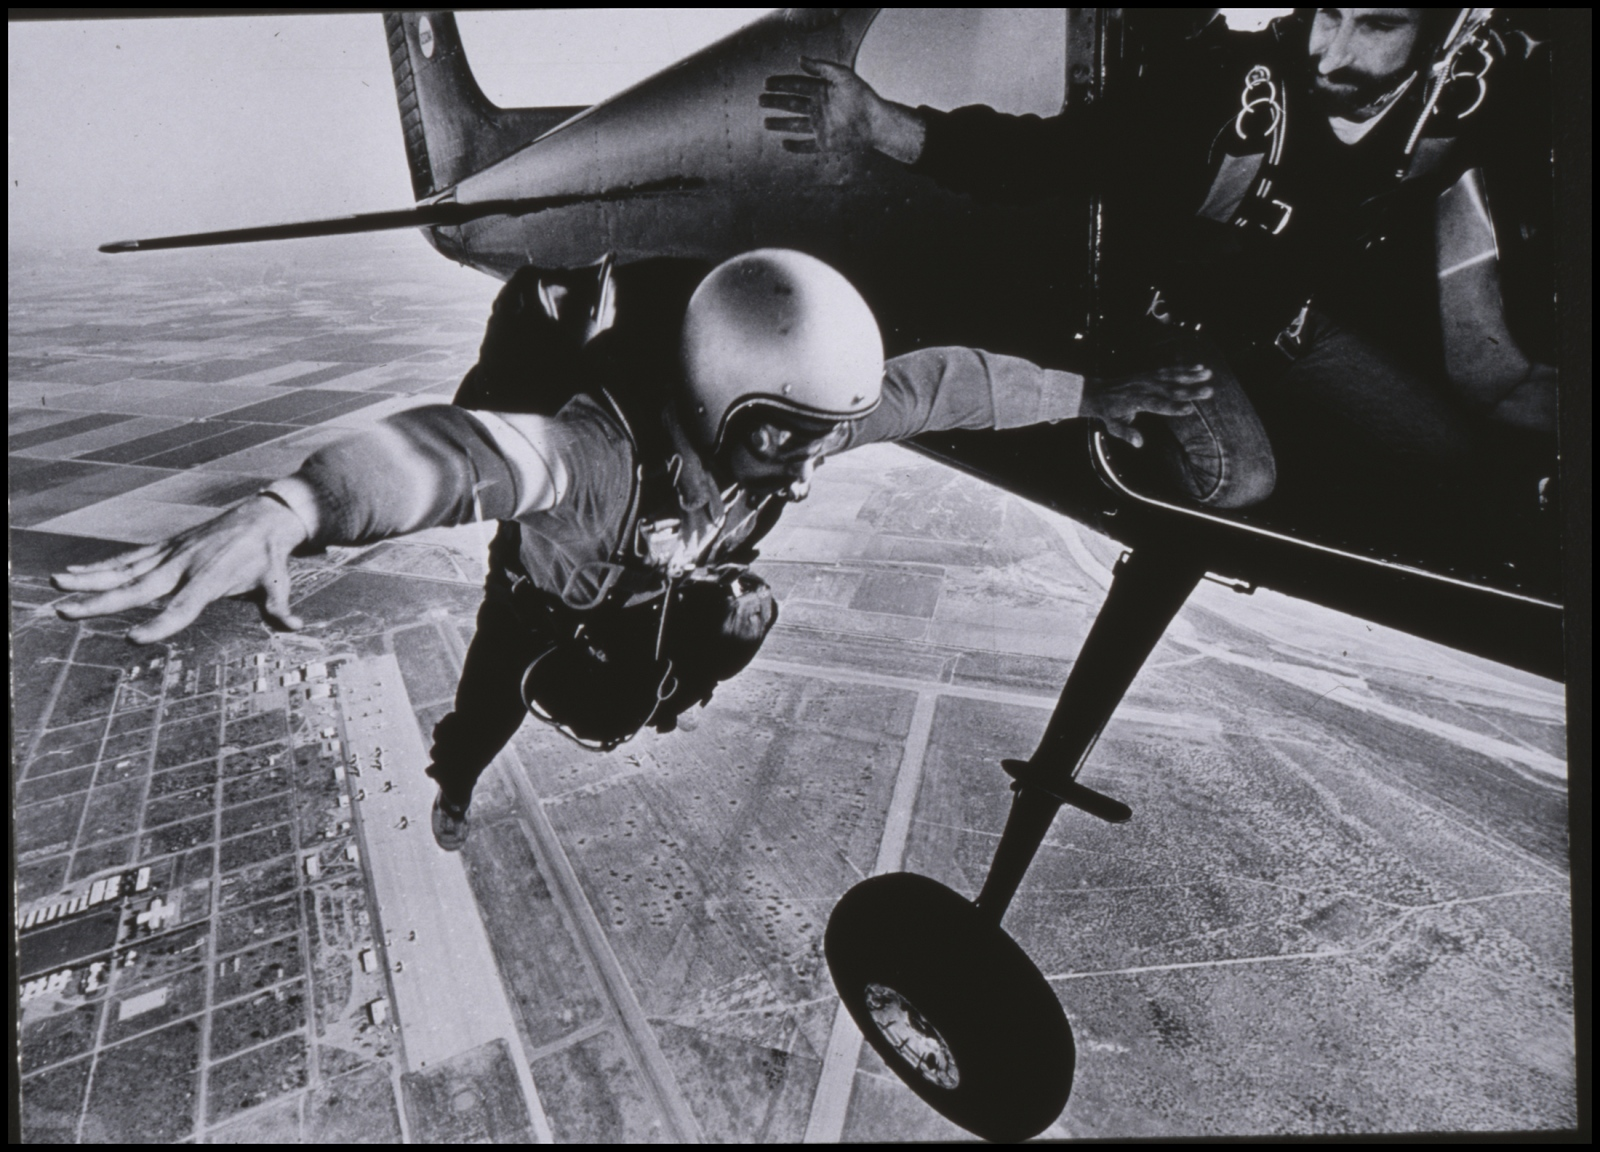 Skydiving, Wisconsin, USA. 1977.